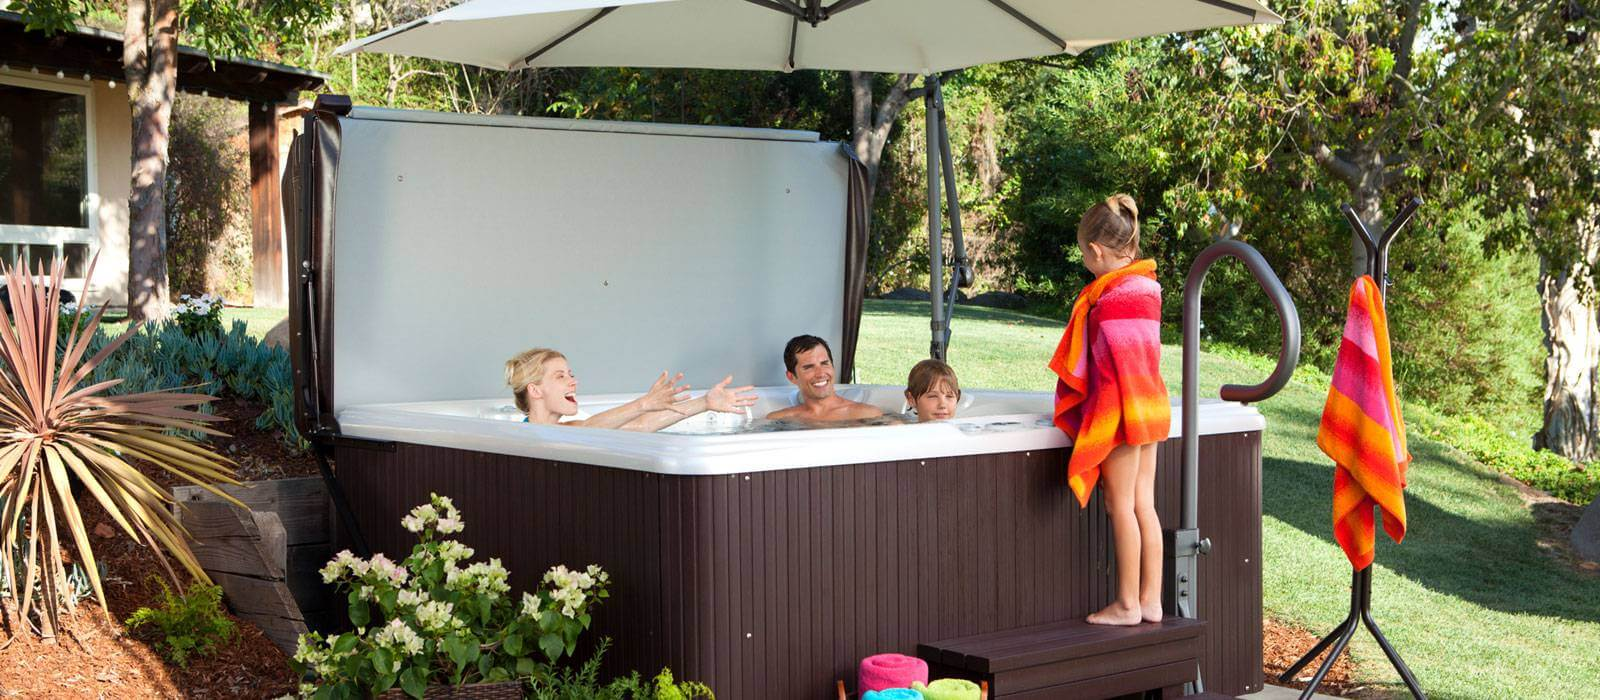 There's room for the whole family in the Tempo hot tub, which features comfortable seating for 6.